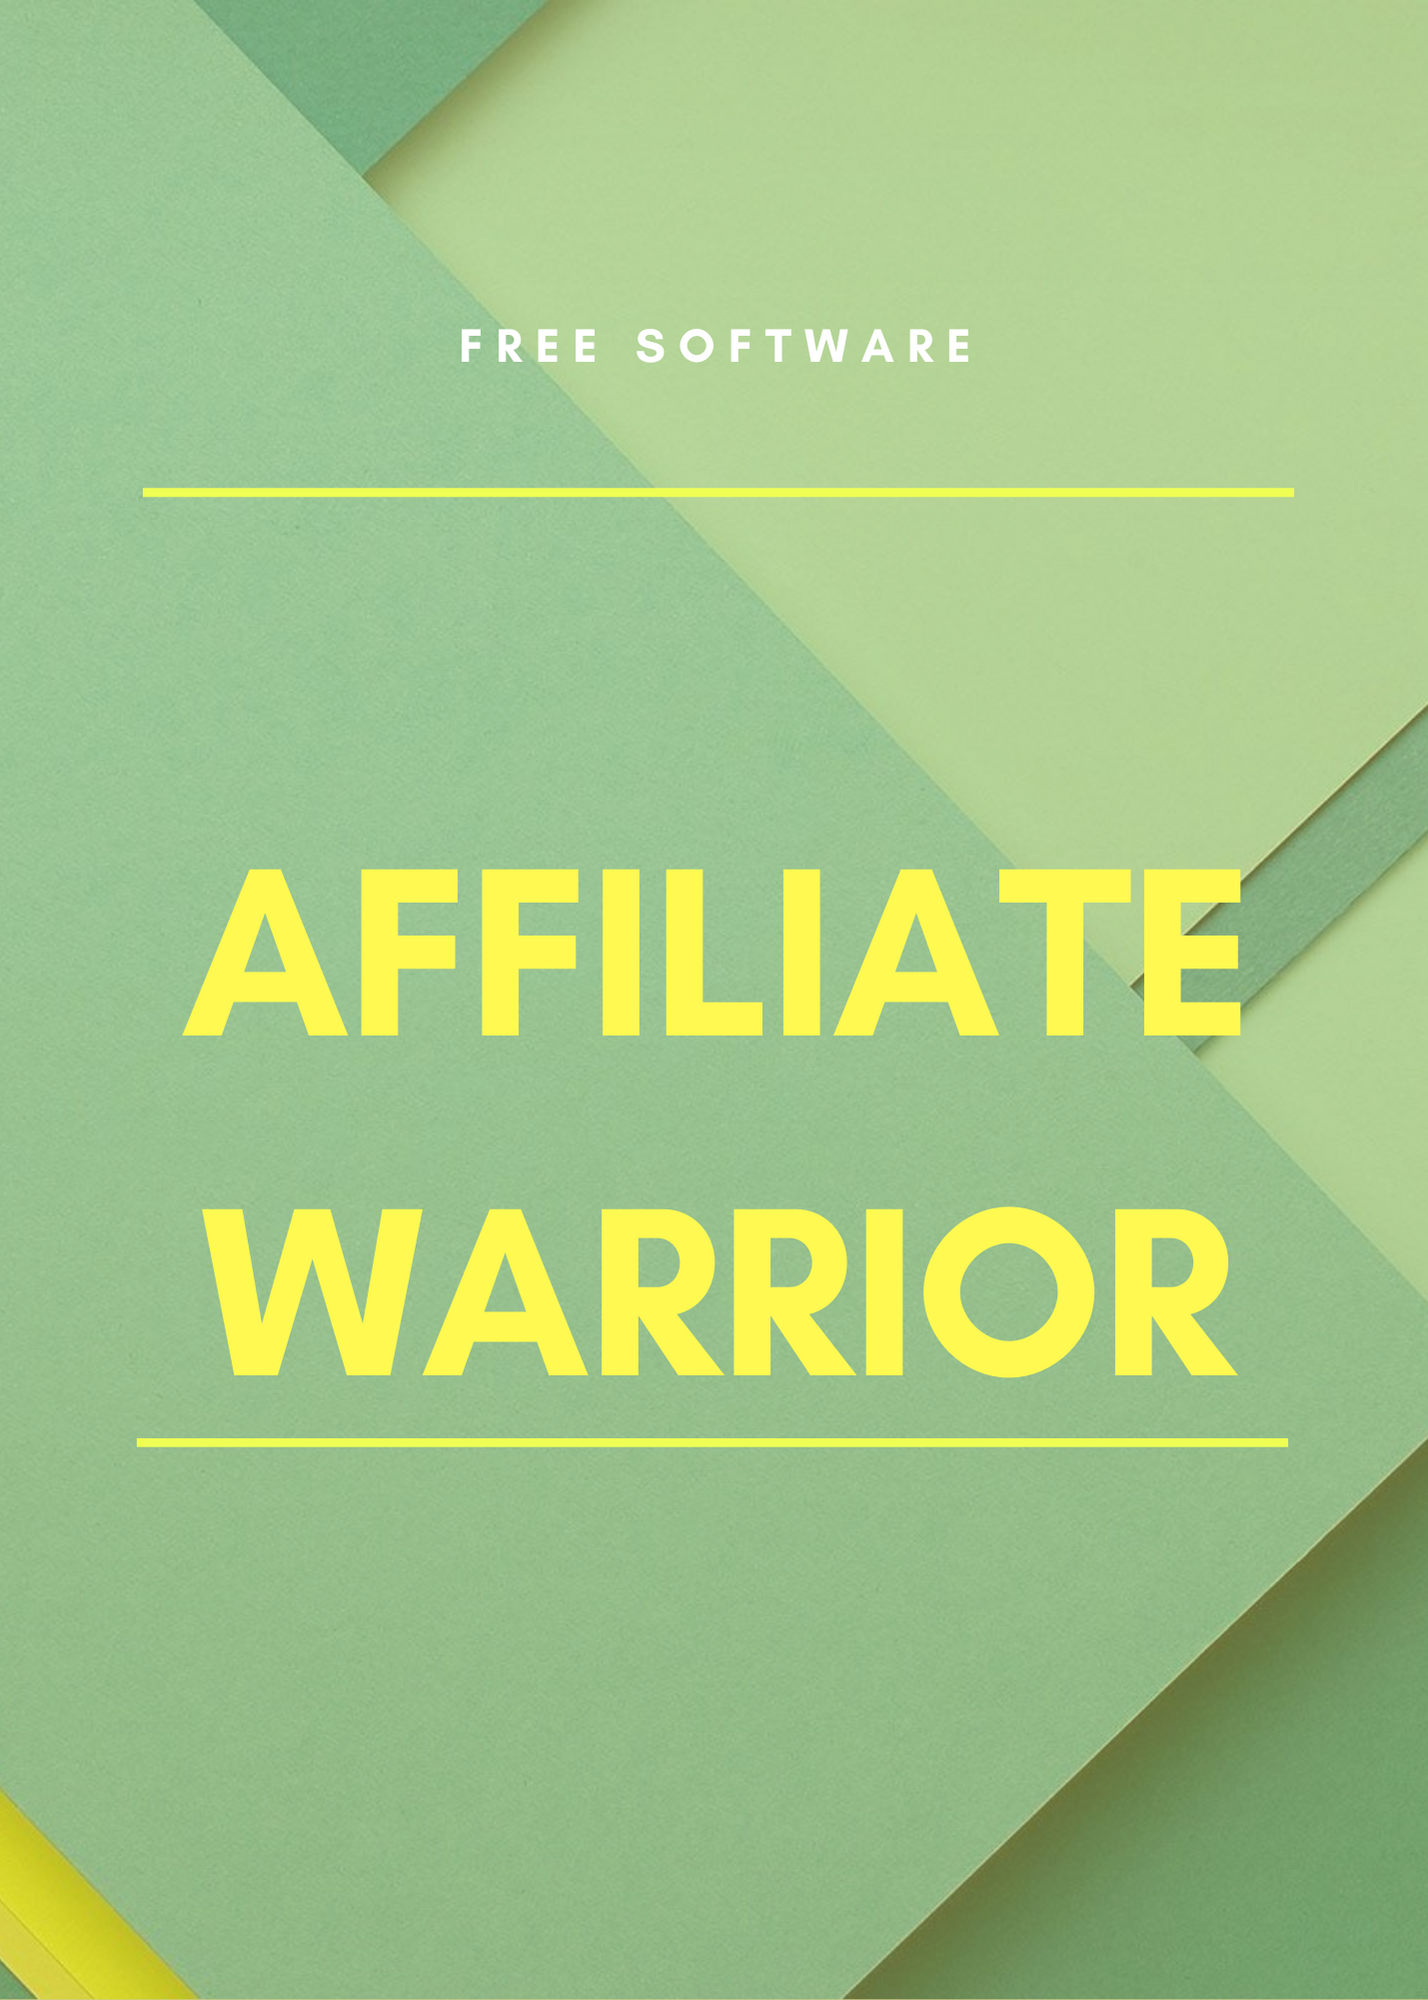 FREE SOFTWARE download for Affiliate